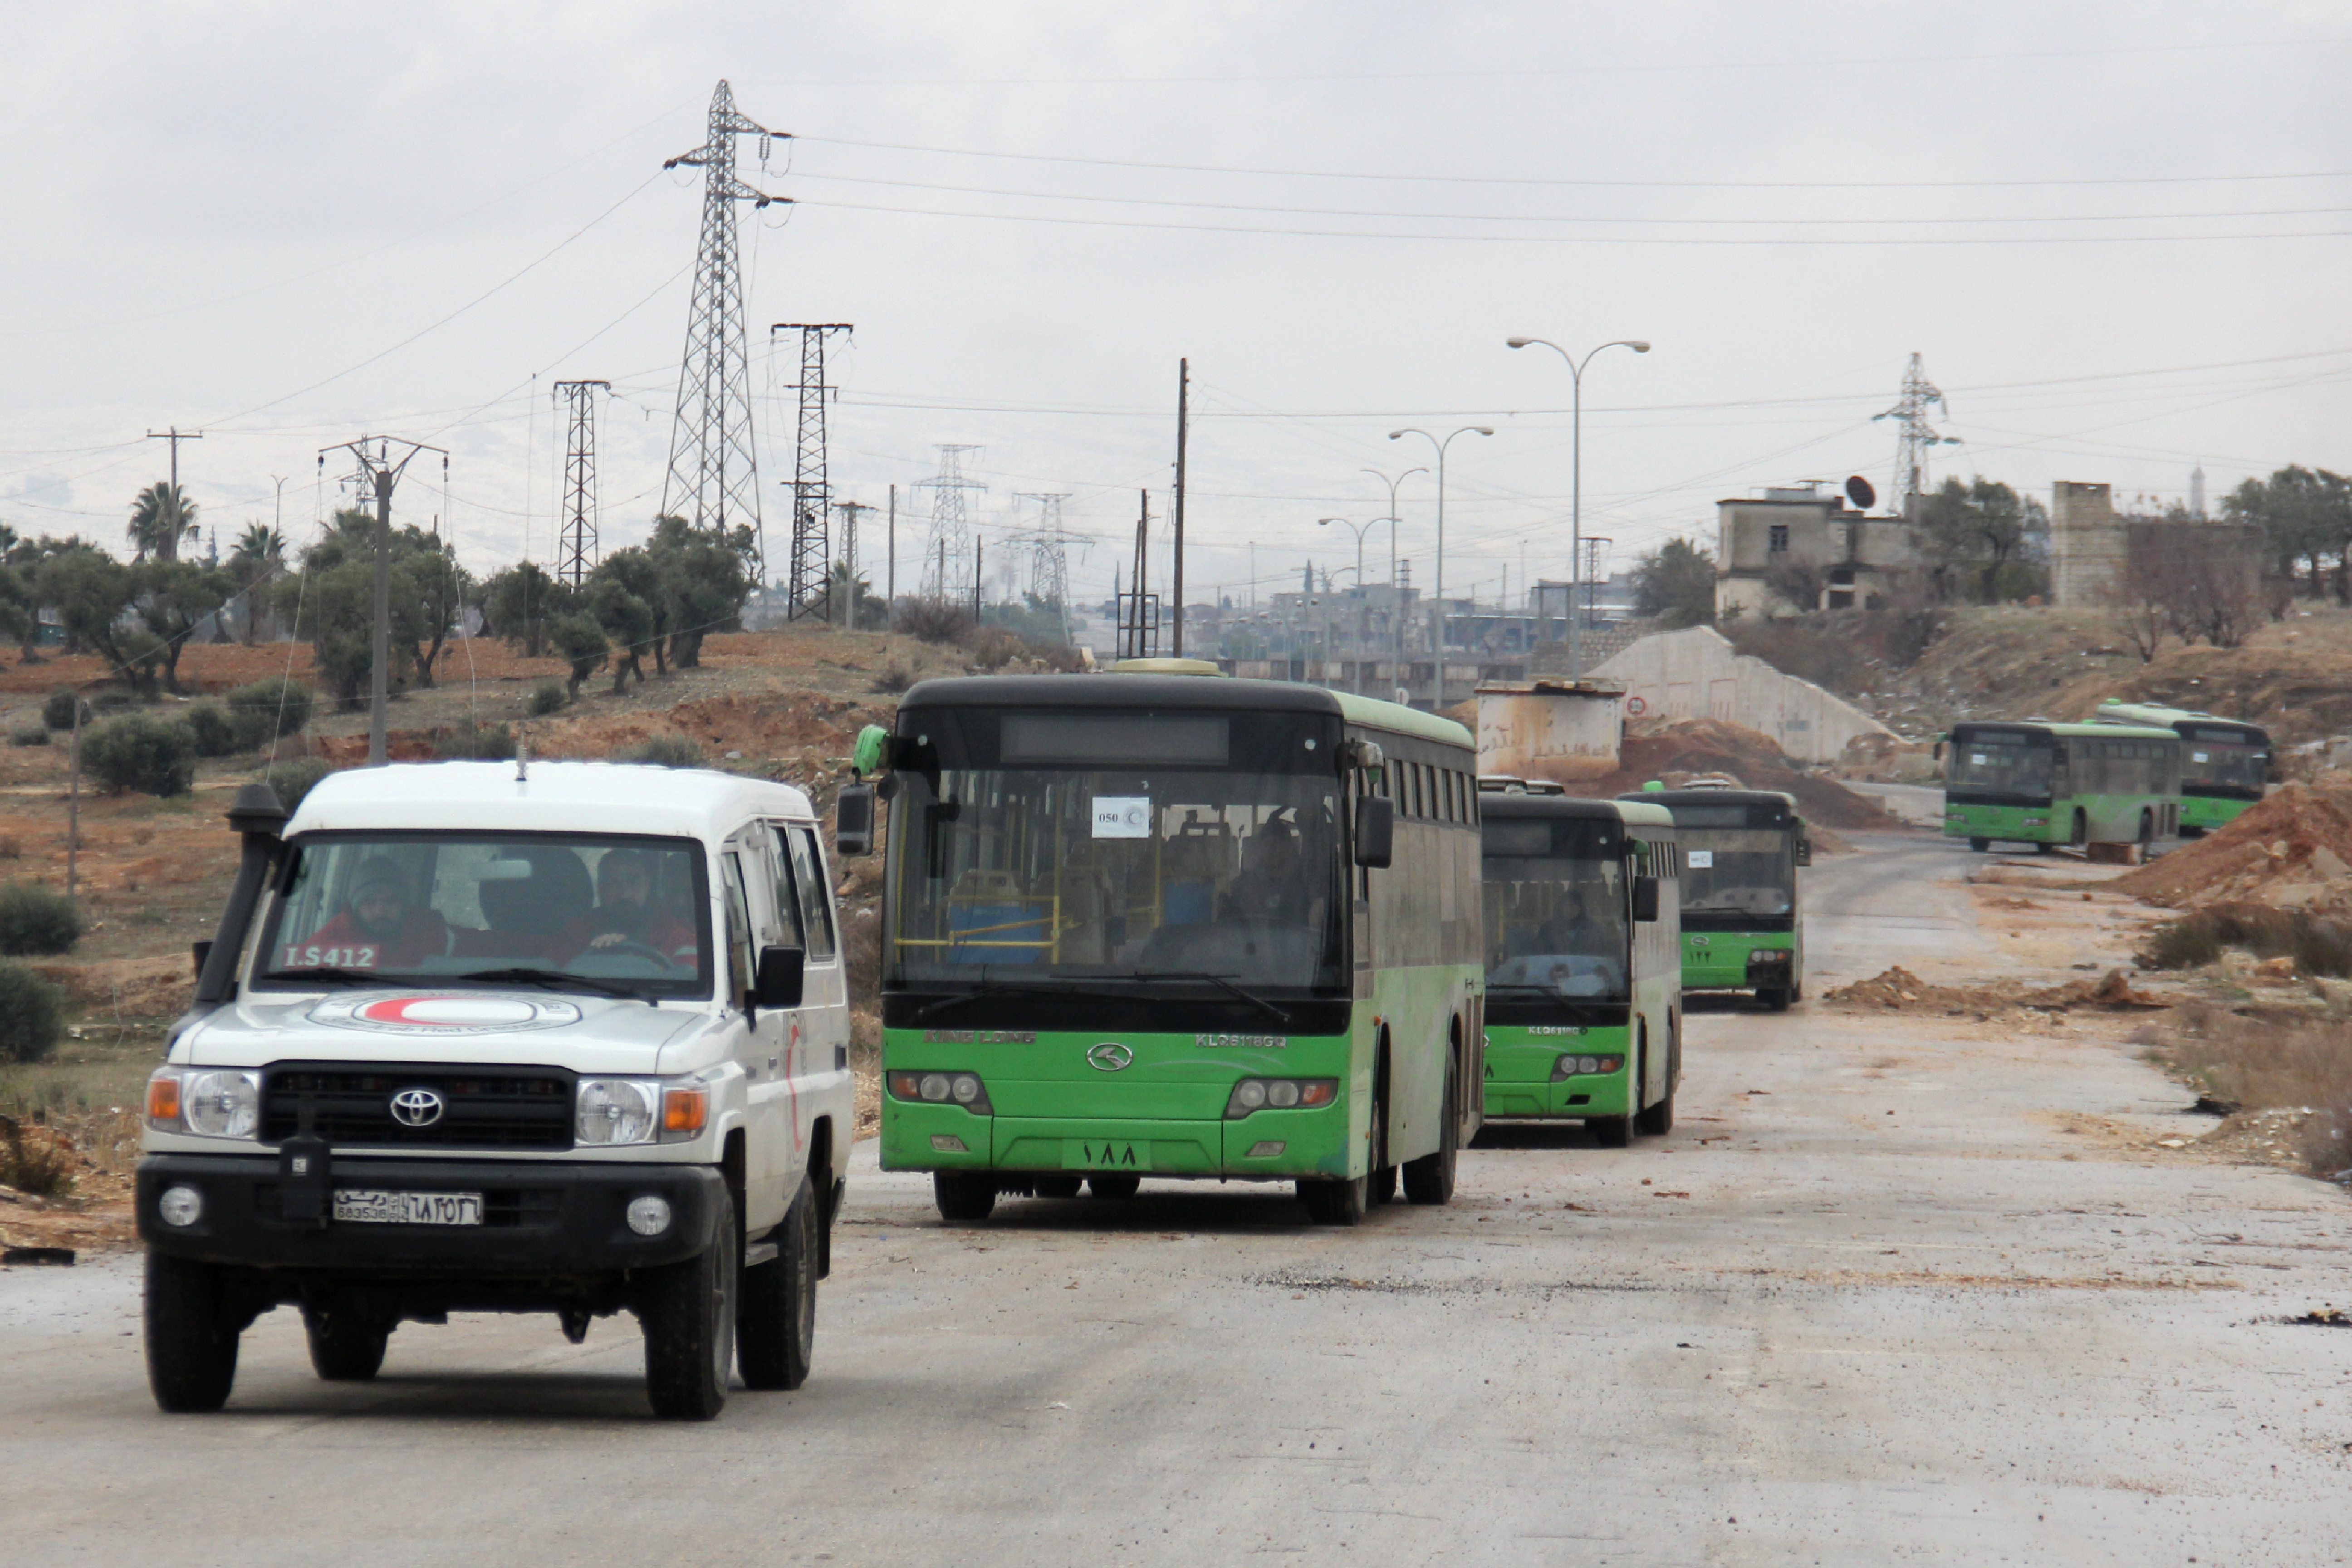 Buses sent to evacuate residents from al-Foua and Kafraya arrive at a rebel-held checkpoint on the outskirts of the two Syrian villages under rebel siege, Dec. 18, 2016.